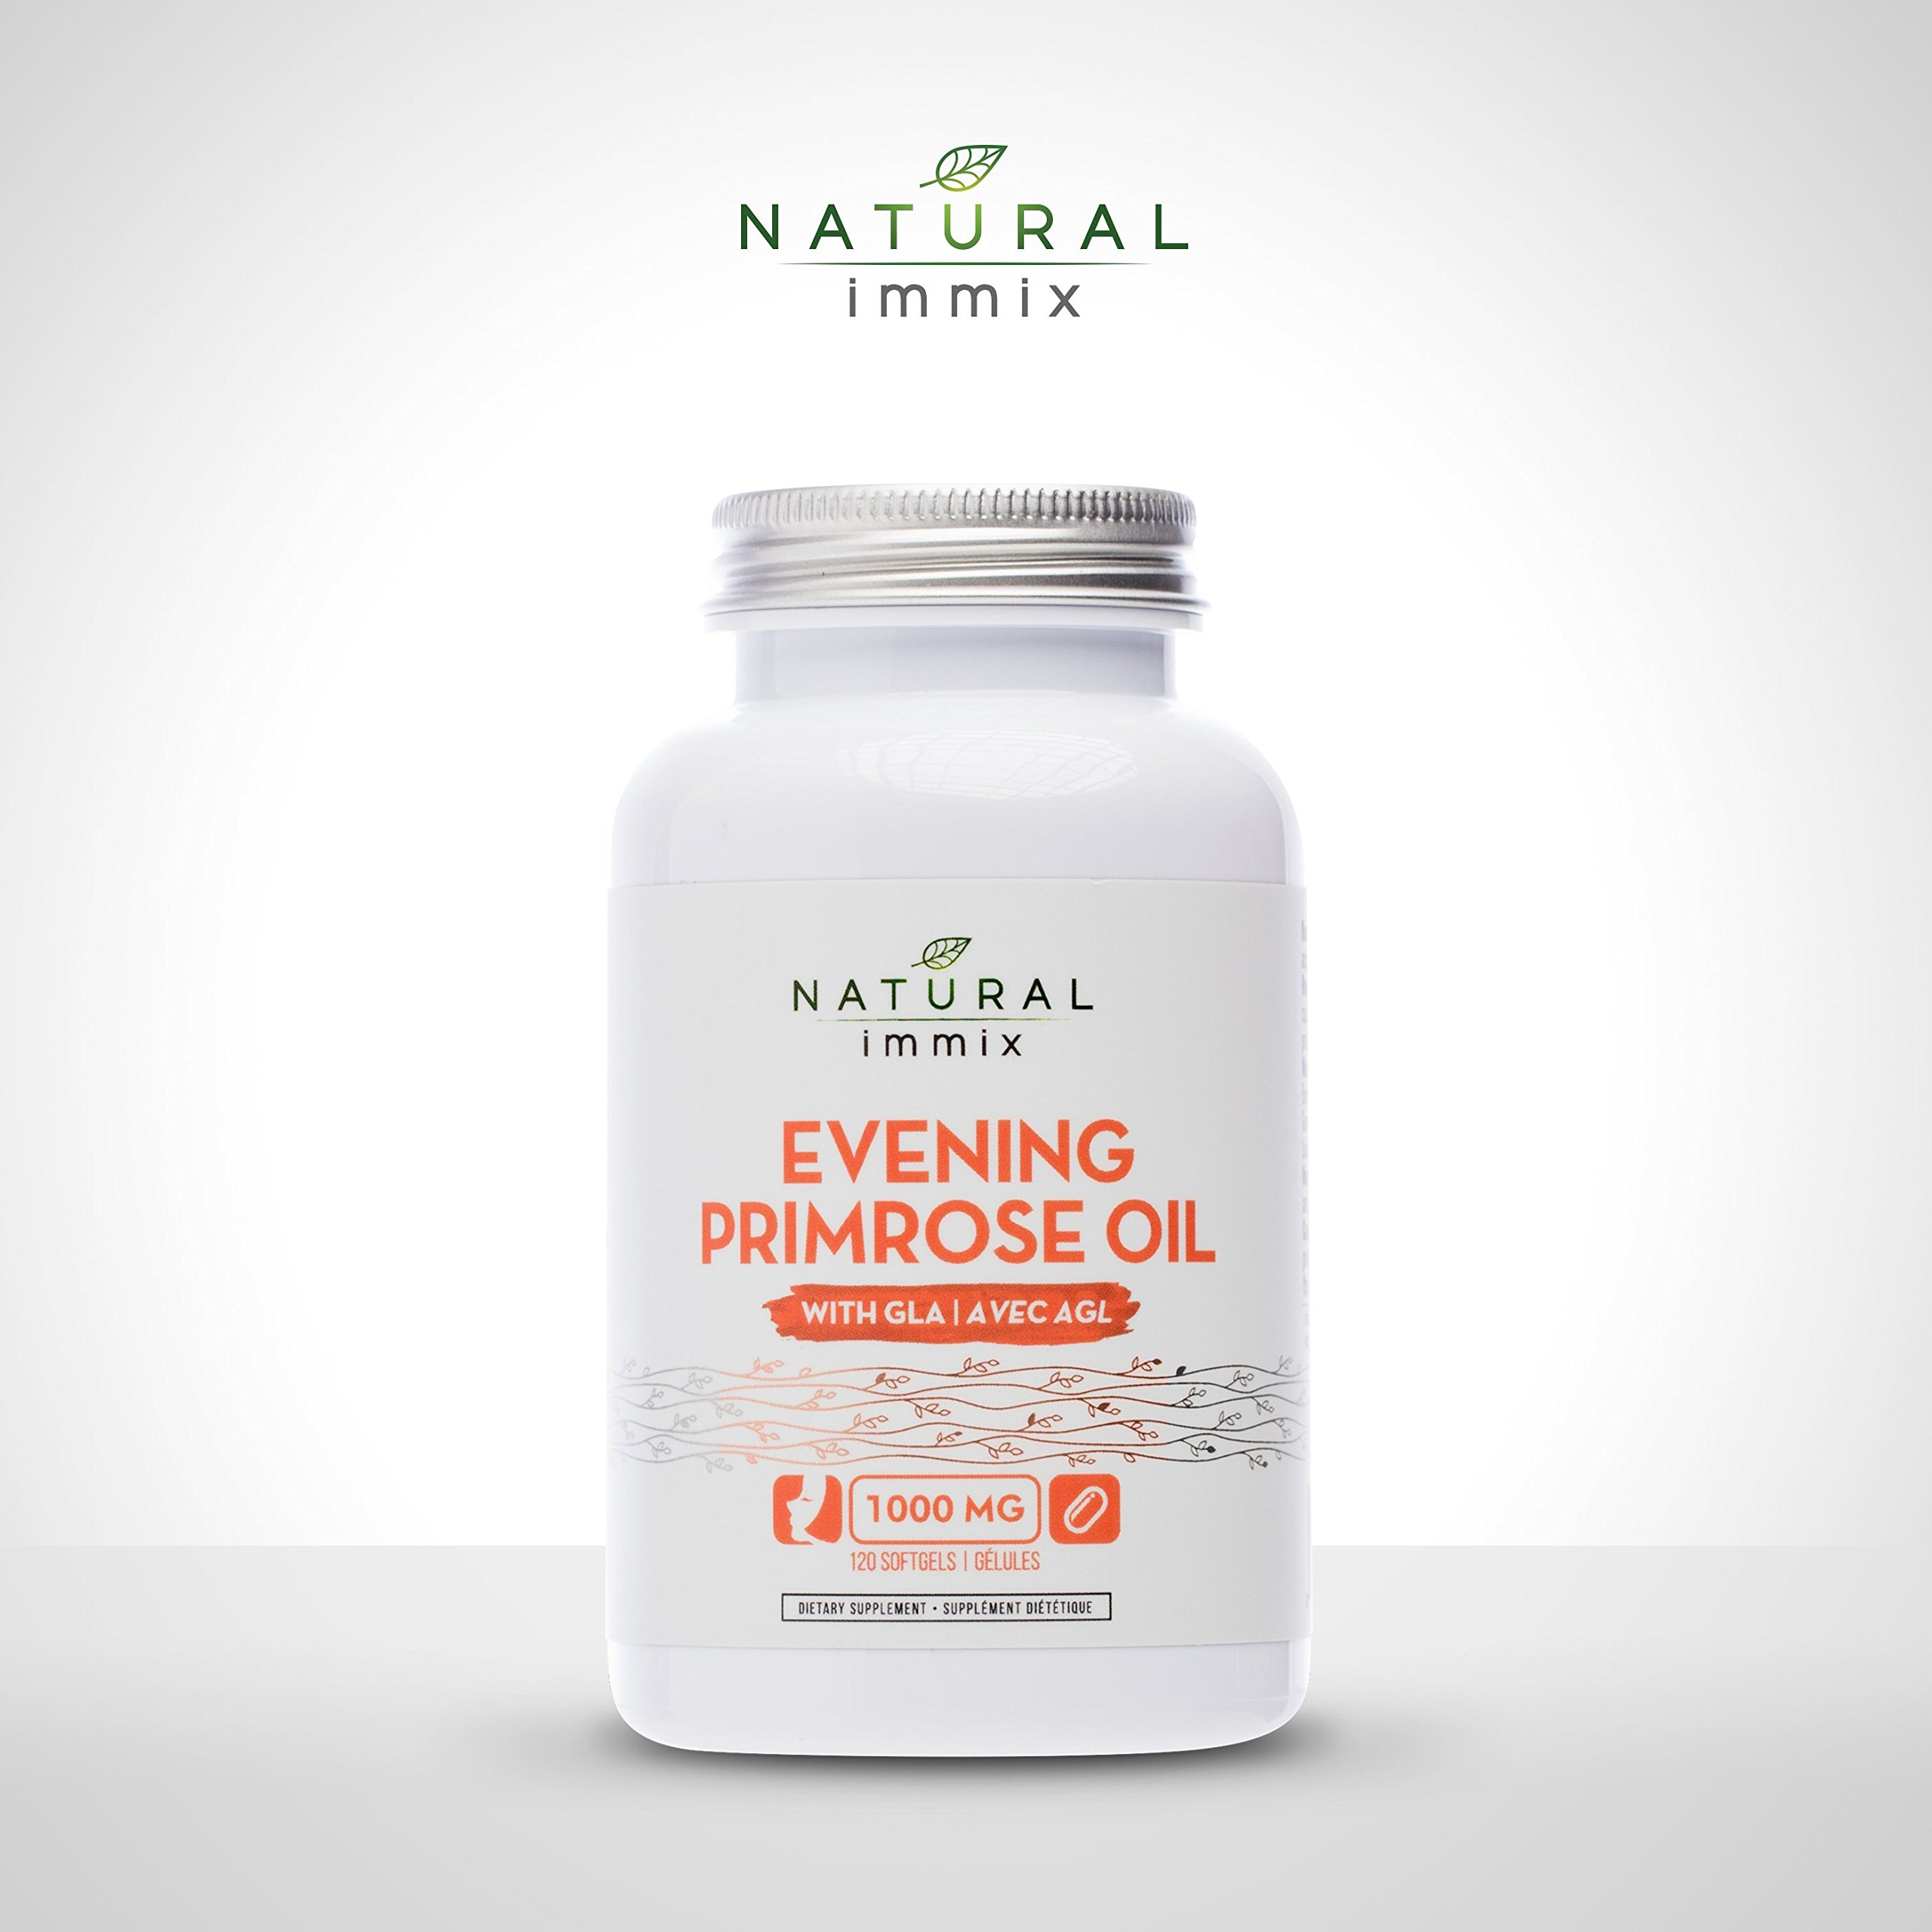 Natural immix - Evening Primrose Oil, Cold-Pressed, 10% GLA, Supports Hormonal Balance, Helps Relieve Menopause Symptoms, 120 Softgels